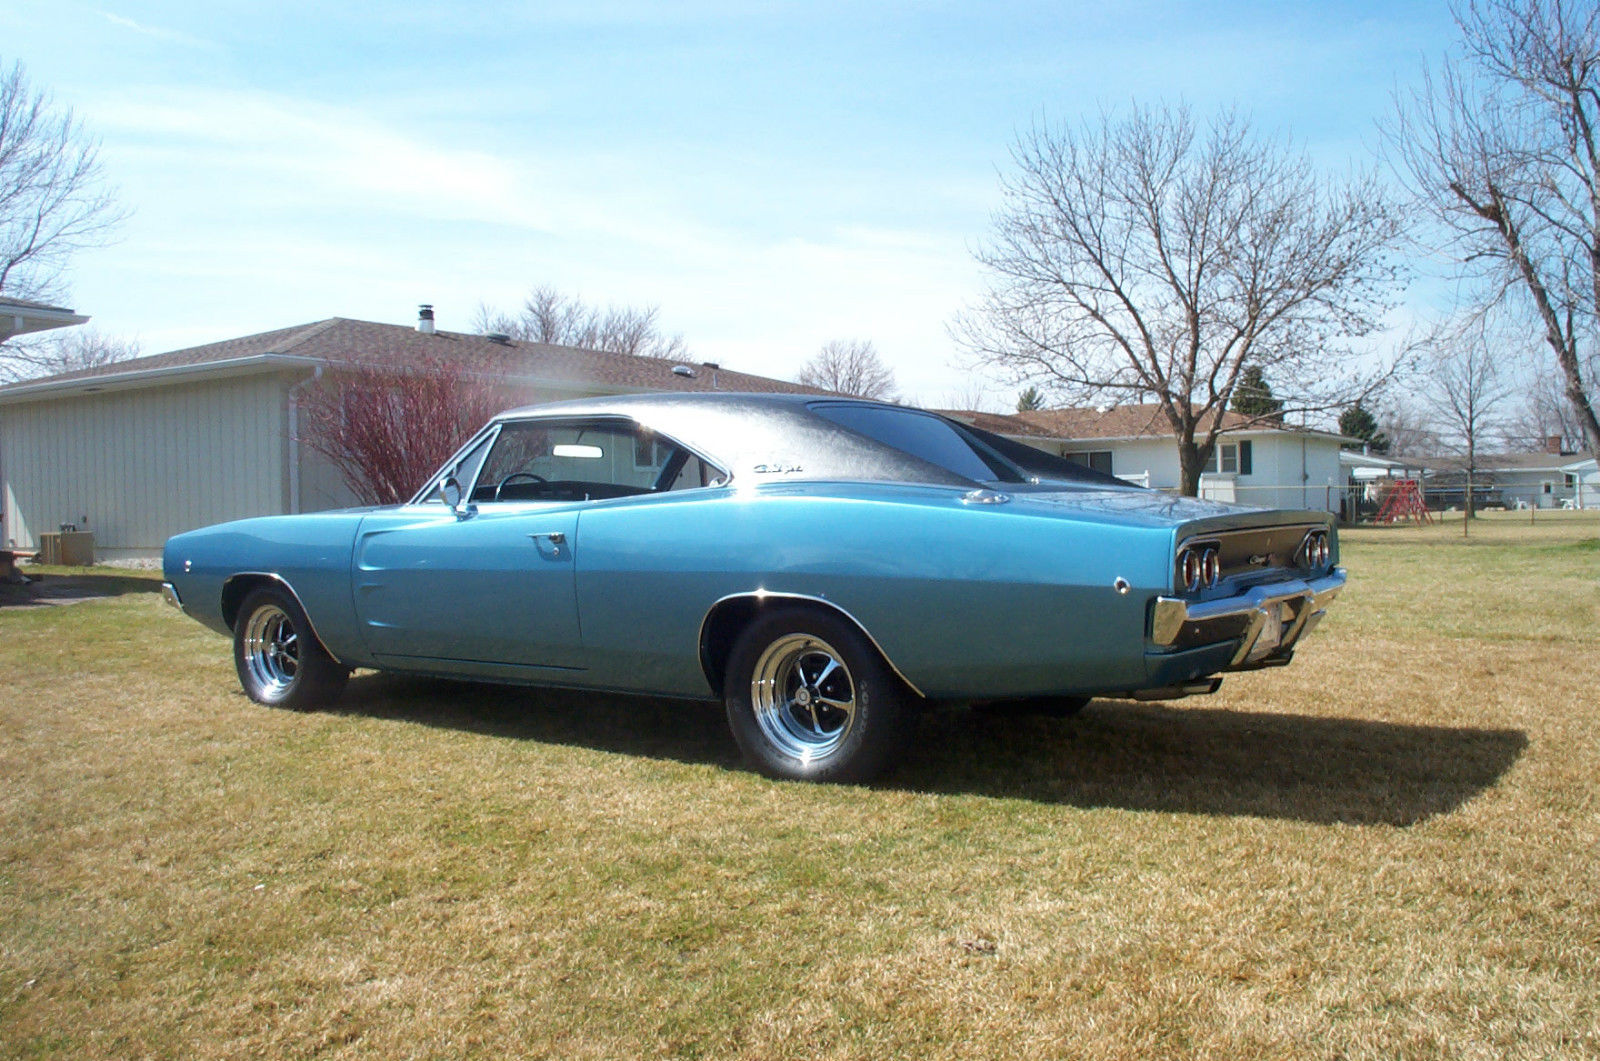 1968 dodge charger r t hardtop 2 door 7 2l for sale in norfolk nebraska united states. Black Bedroom Furniture Sets. Home Design Ideas